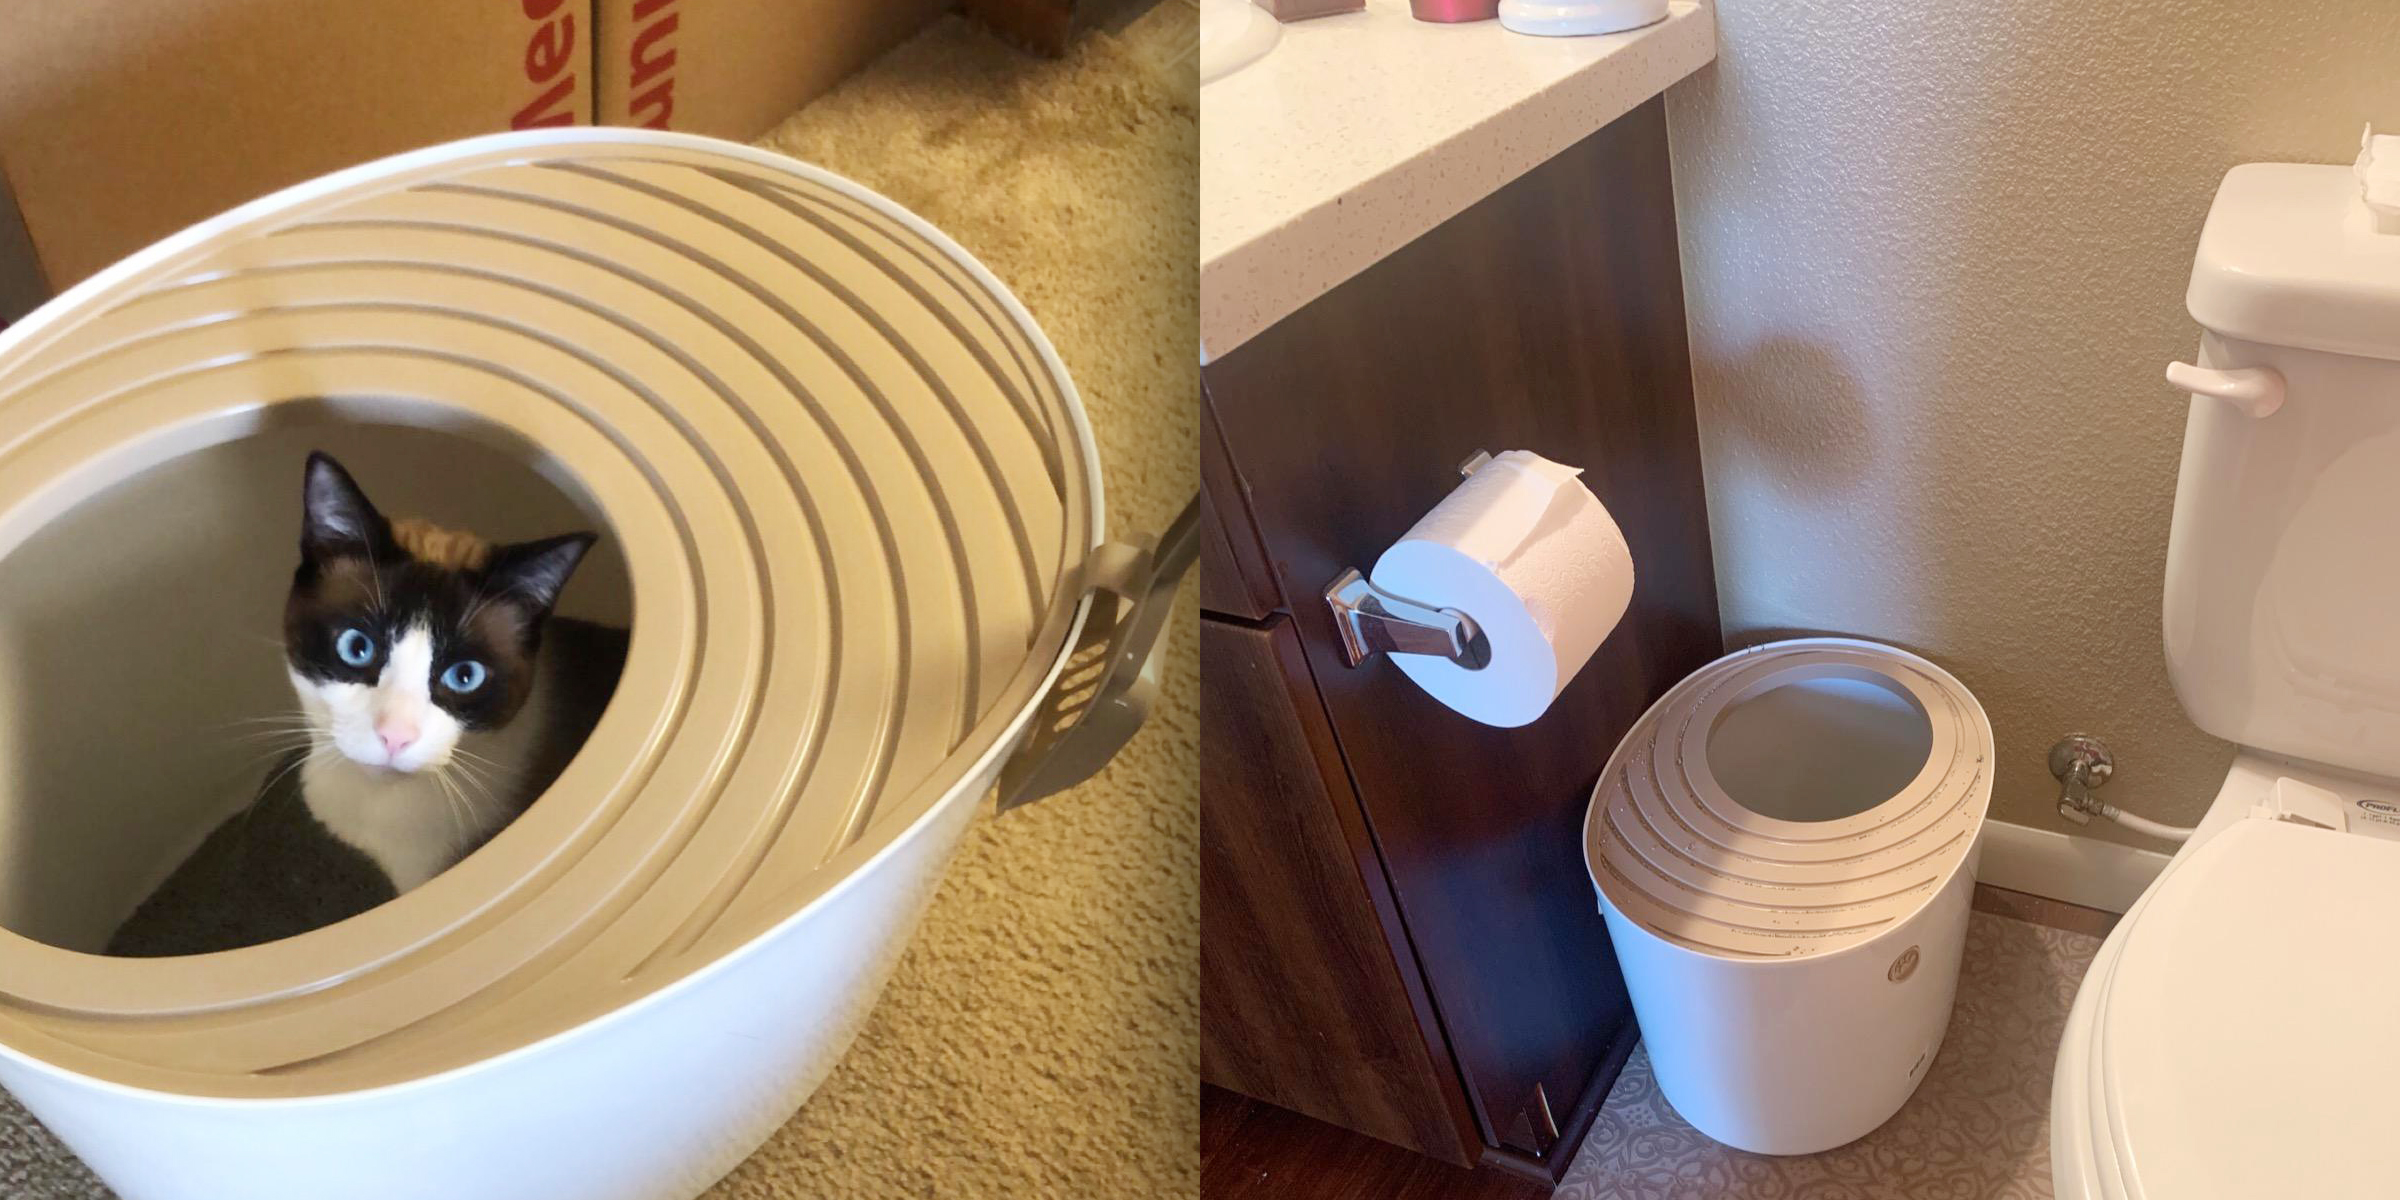 This unique litter box has saved me hours on cleaning my apartment